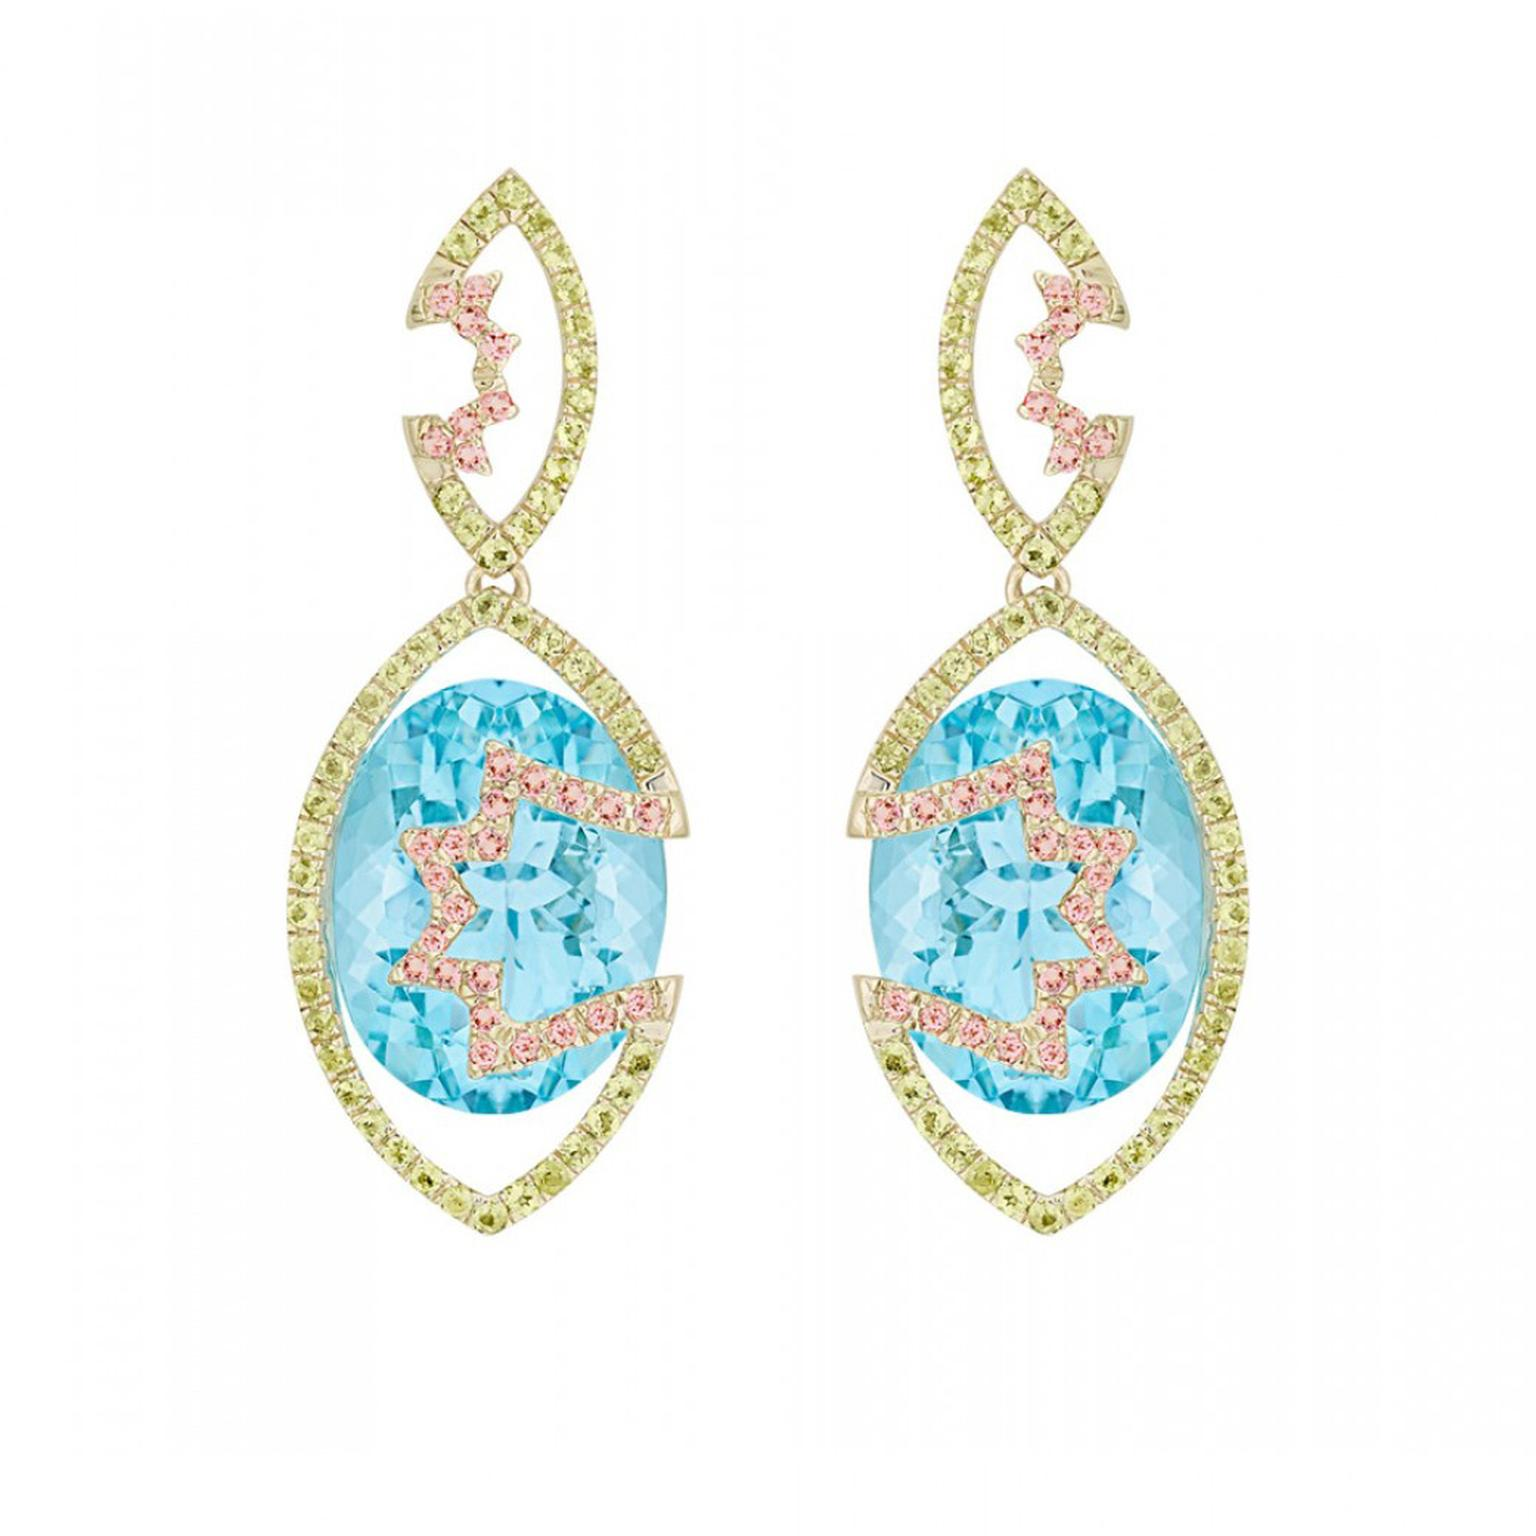 Arya Esha Swiss blue topaz earrings with tourmaline and peridot accents